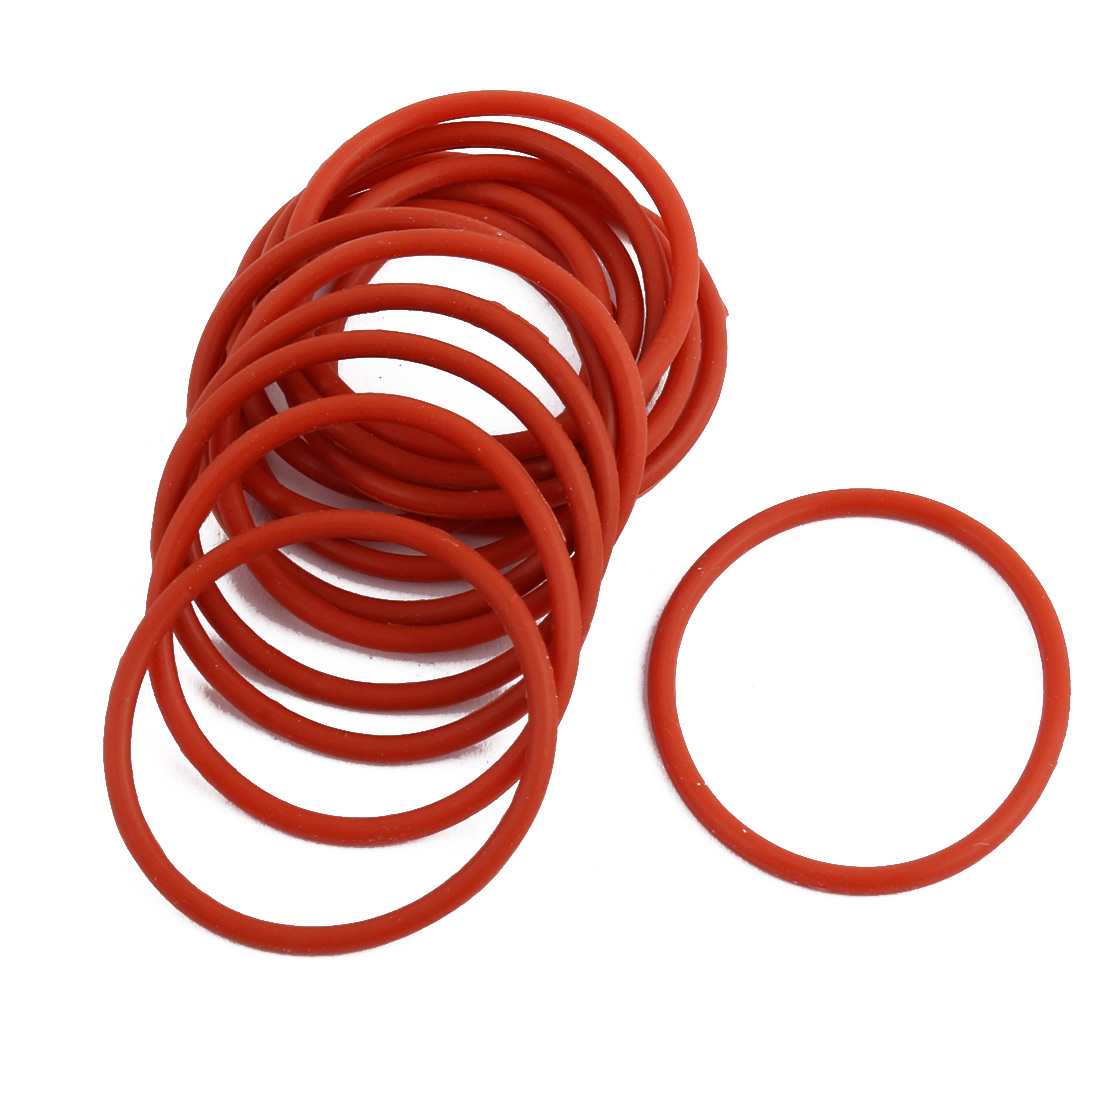 15pcs Red Round Nitrile Butadiene Rubber NBR O-Ring 31mm OD 1.9mm Width